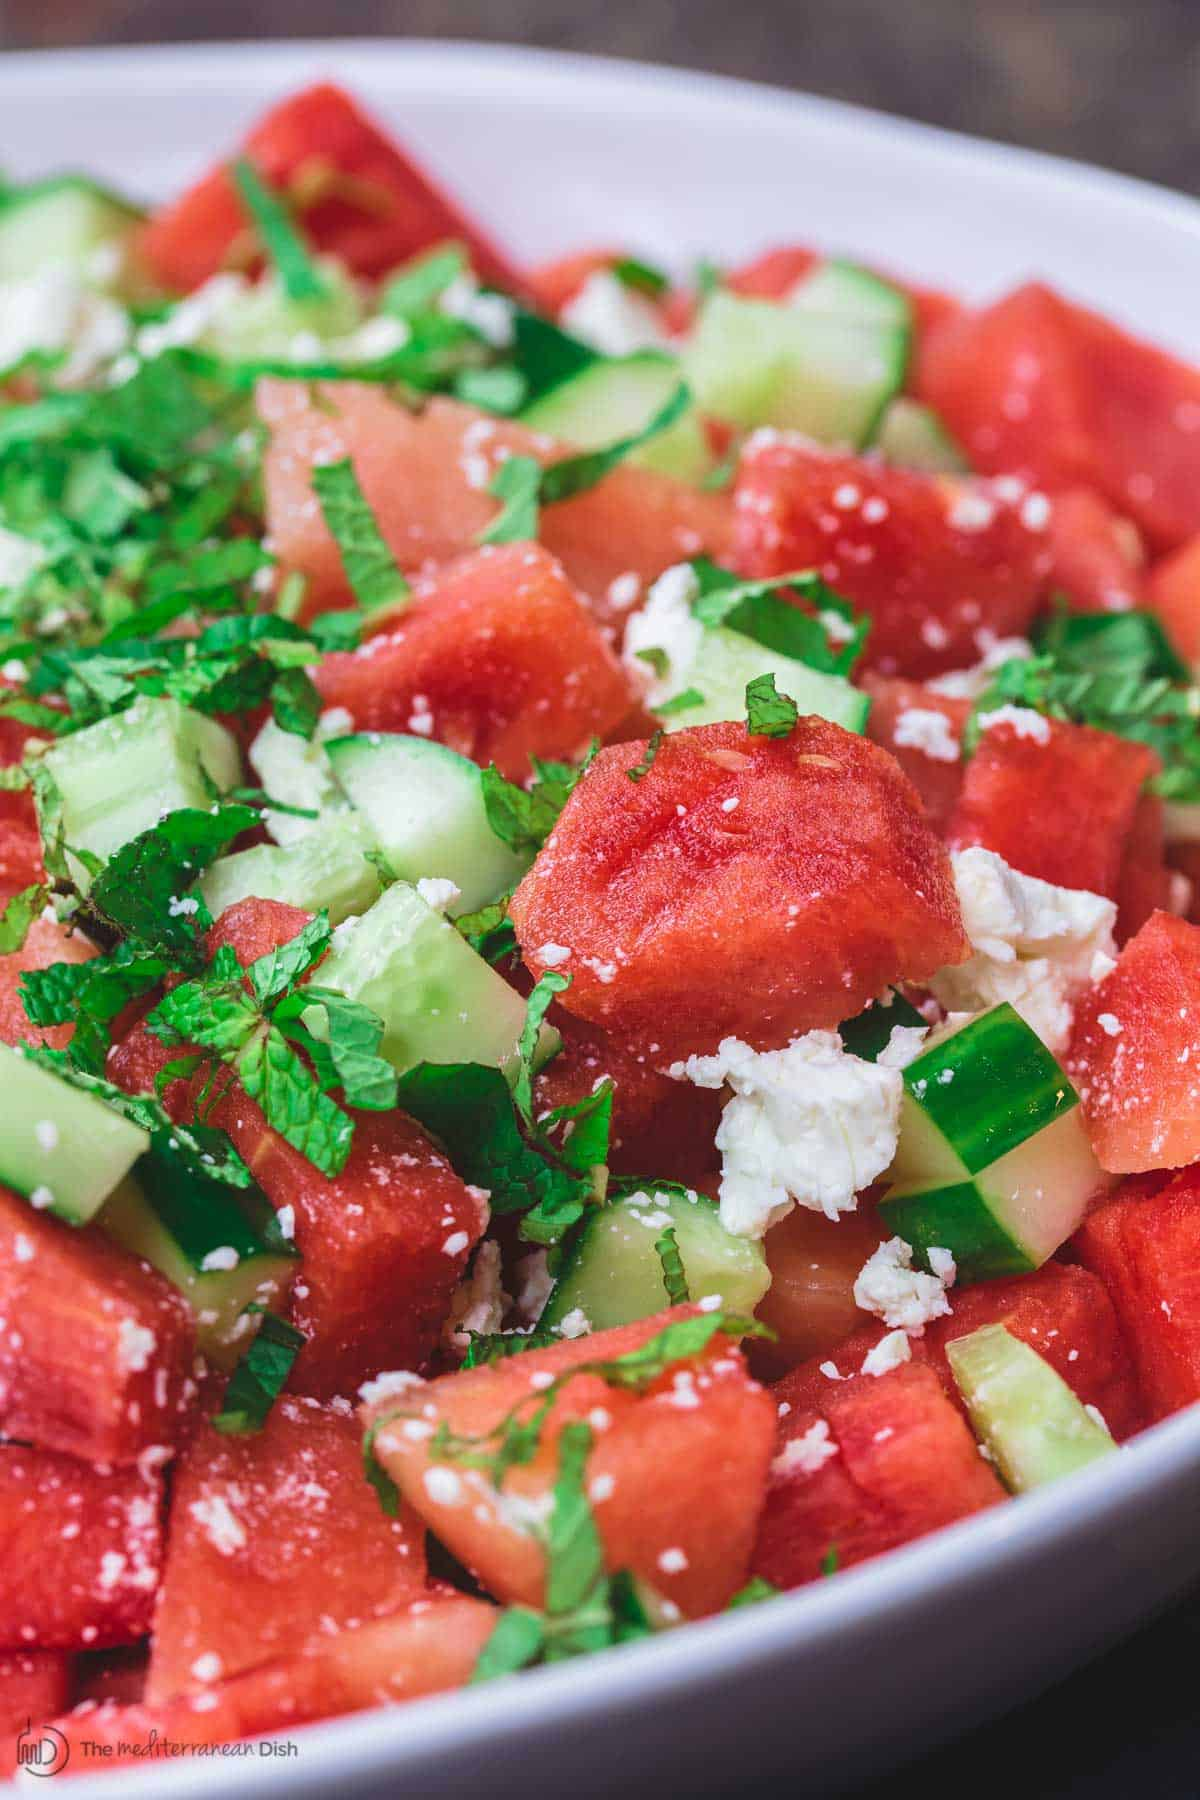 Mediterranean Watermelon Salad Recipe | The Mediterranean Dish. A light and fresh watermelon salad with cucumbers, feta cheese and fresh herbs. All dressed in a honey vinaigrette.